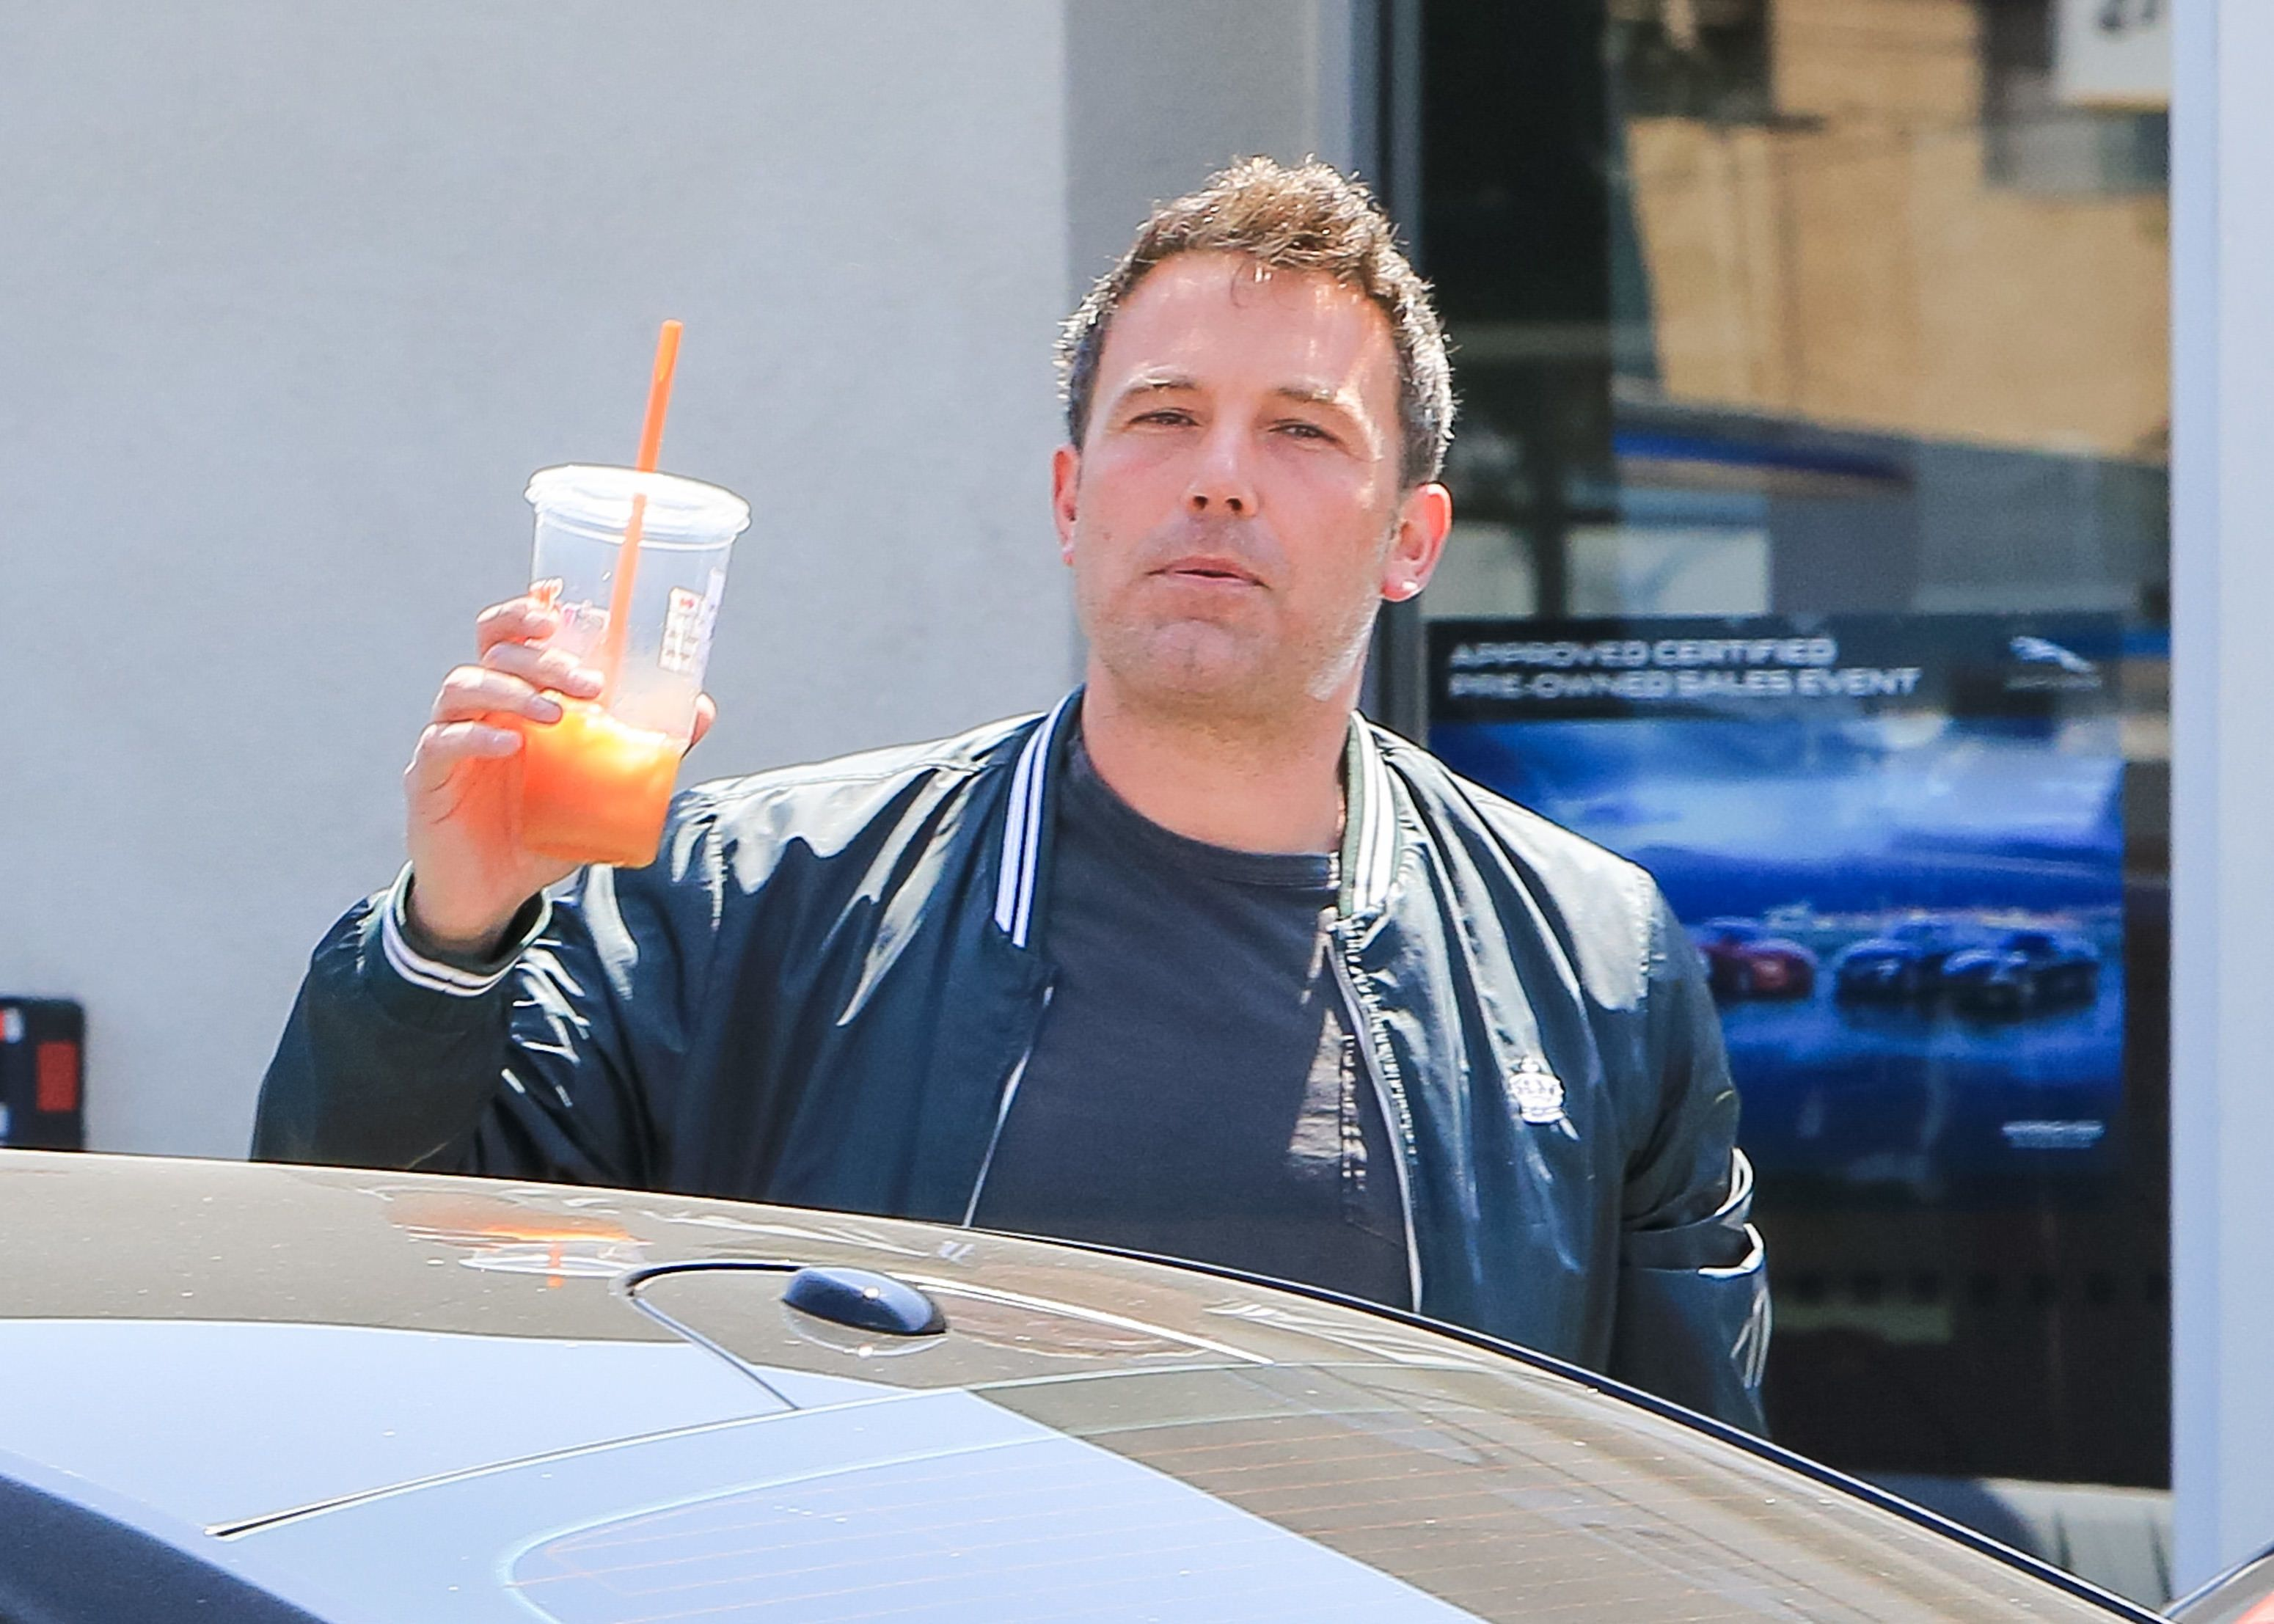 Ben Affleck enters rehab for the third time, multiple reports